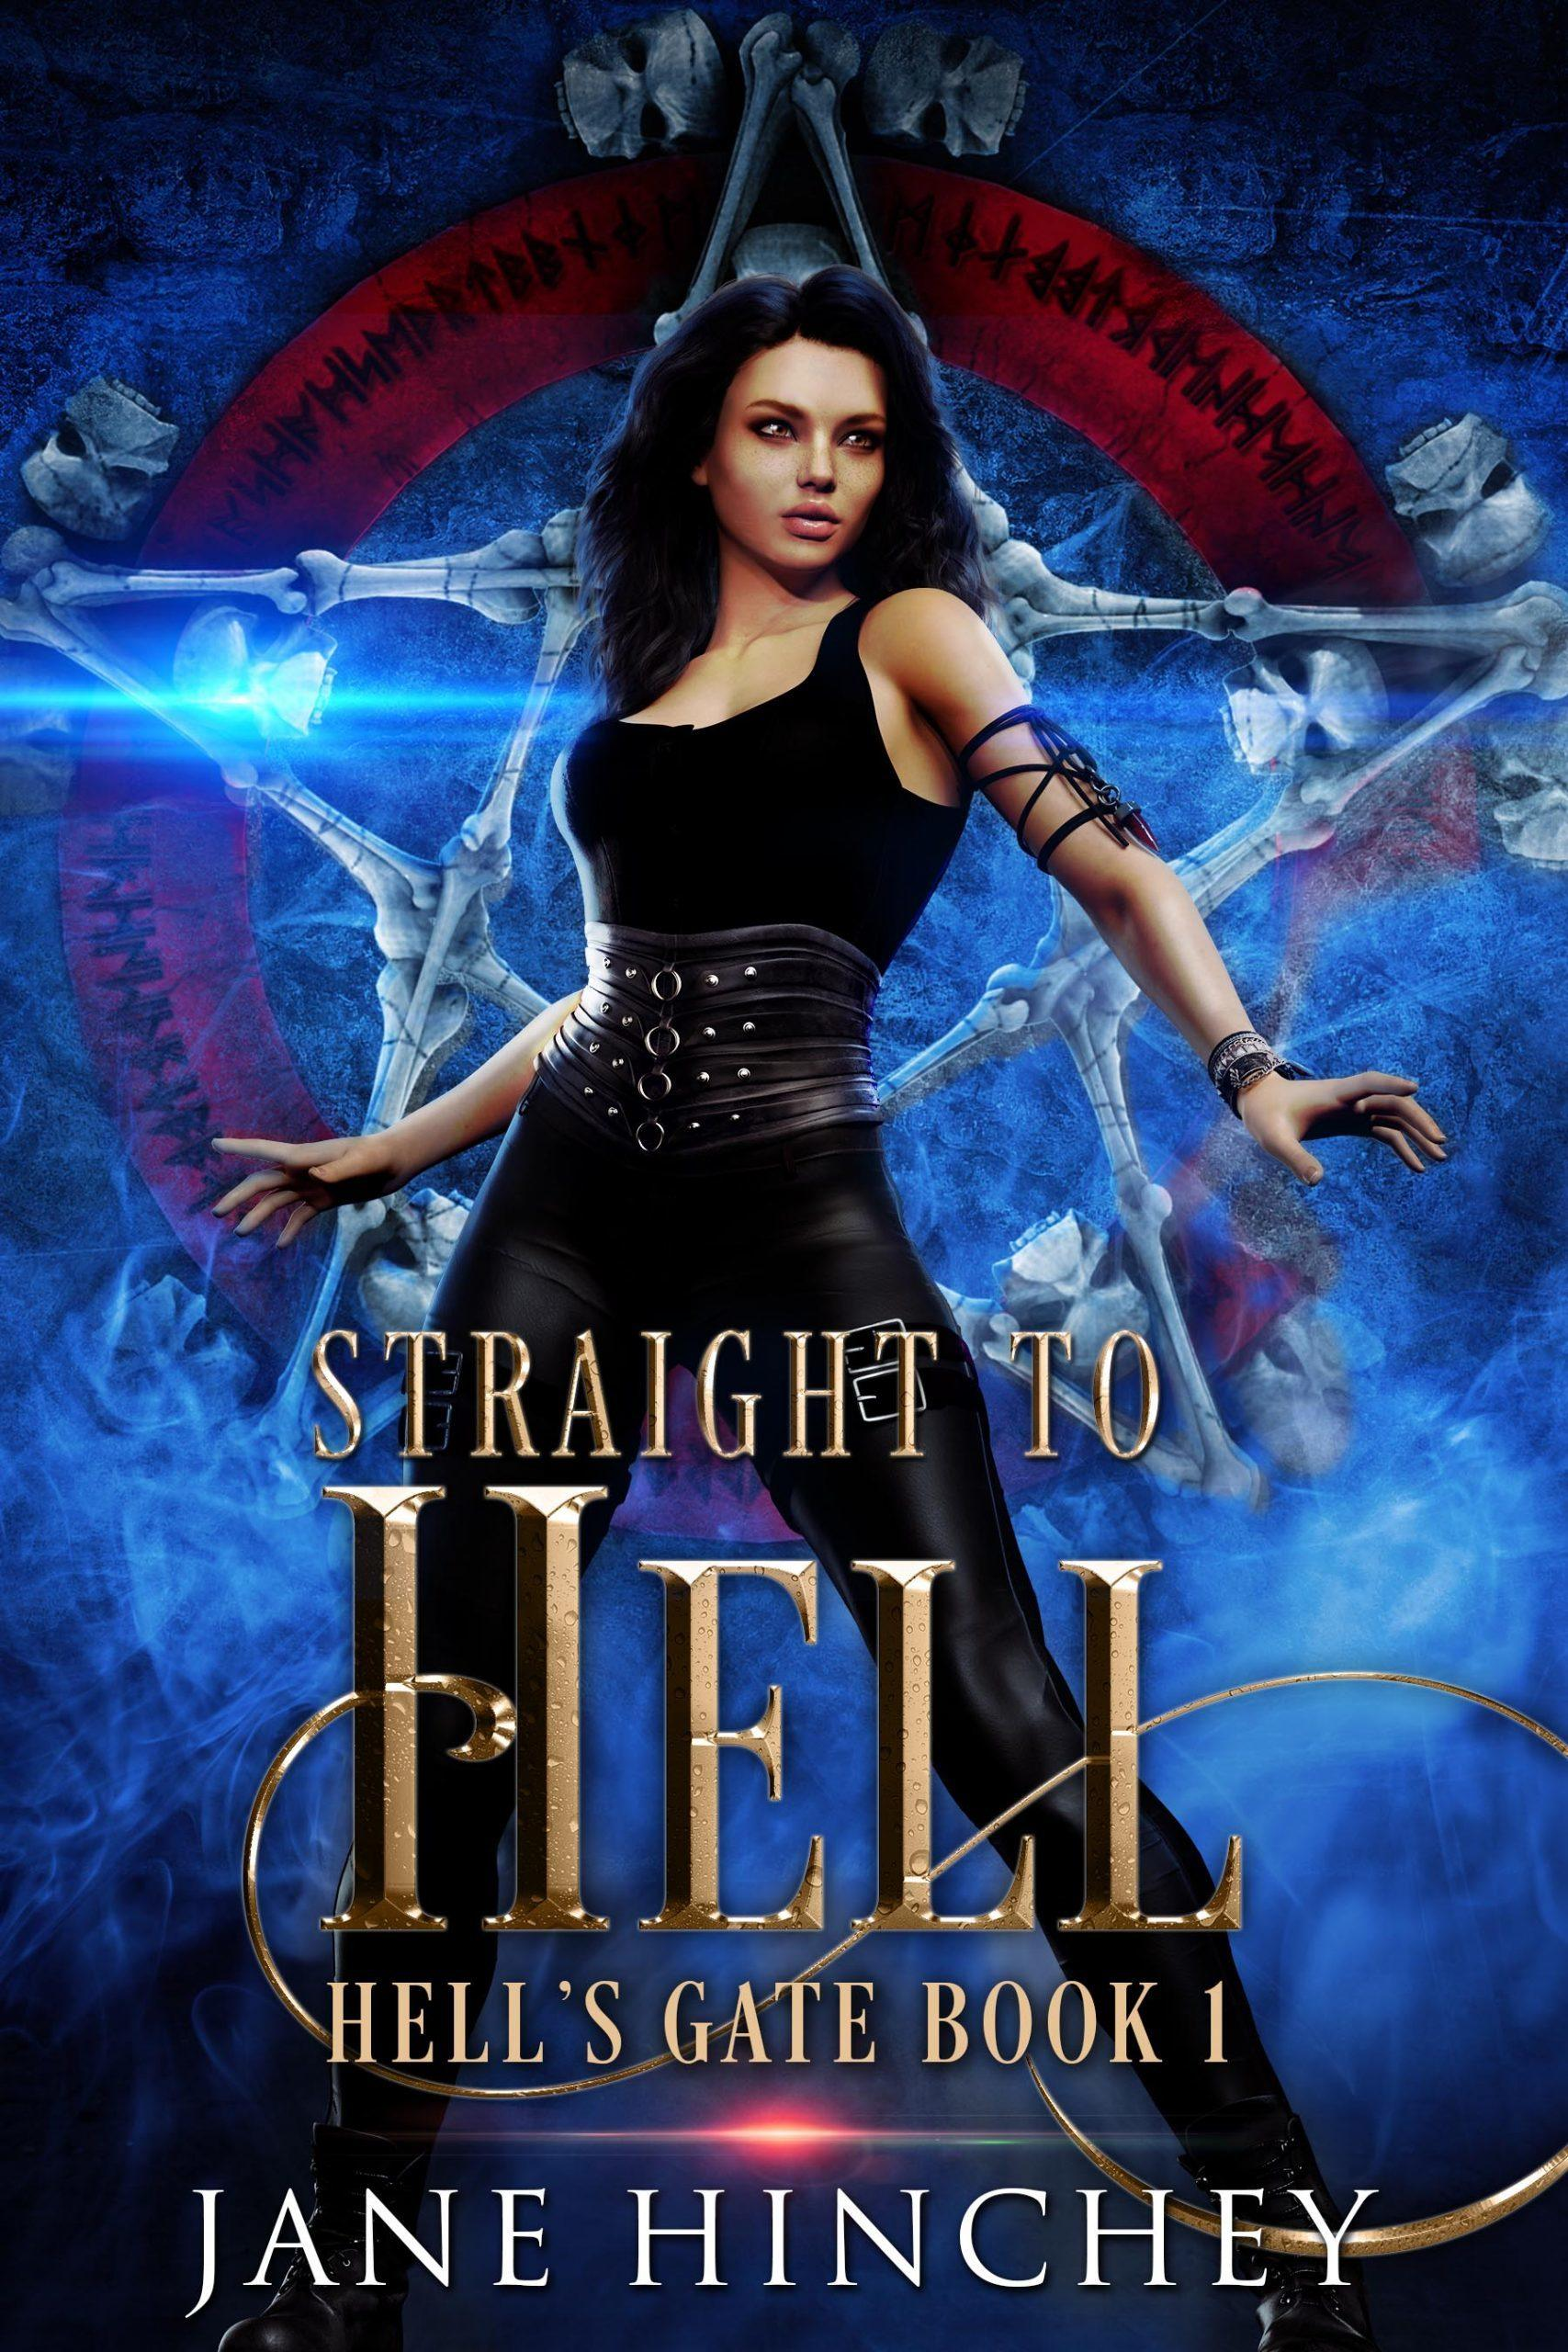 Book one in the Hell's Gate Series by Jane Hinchey